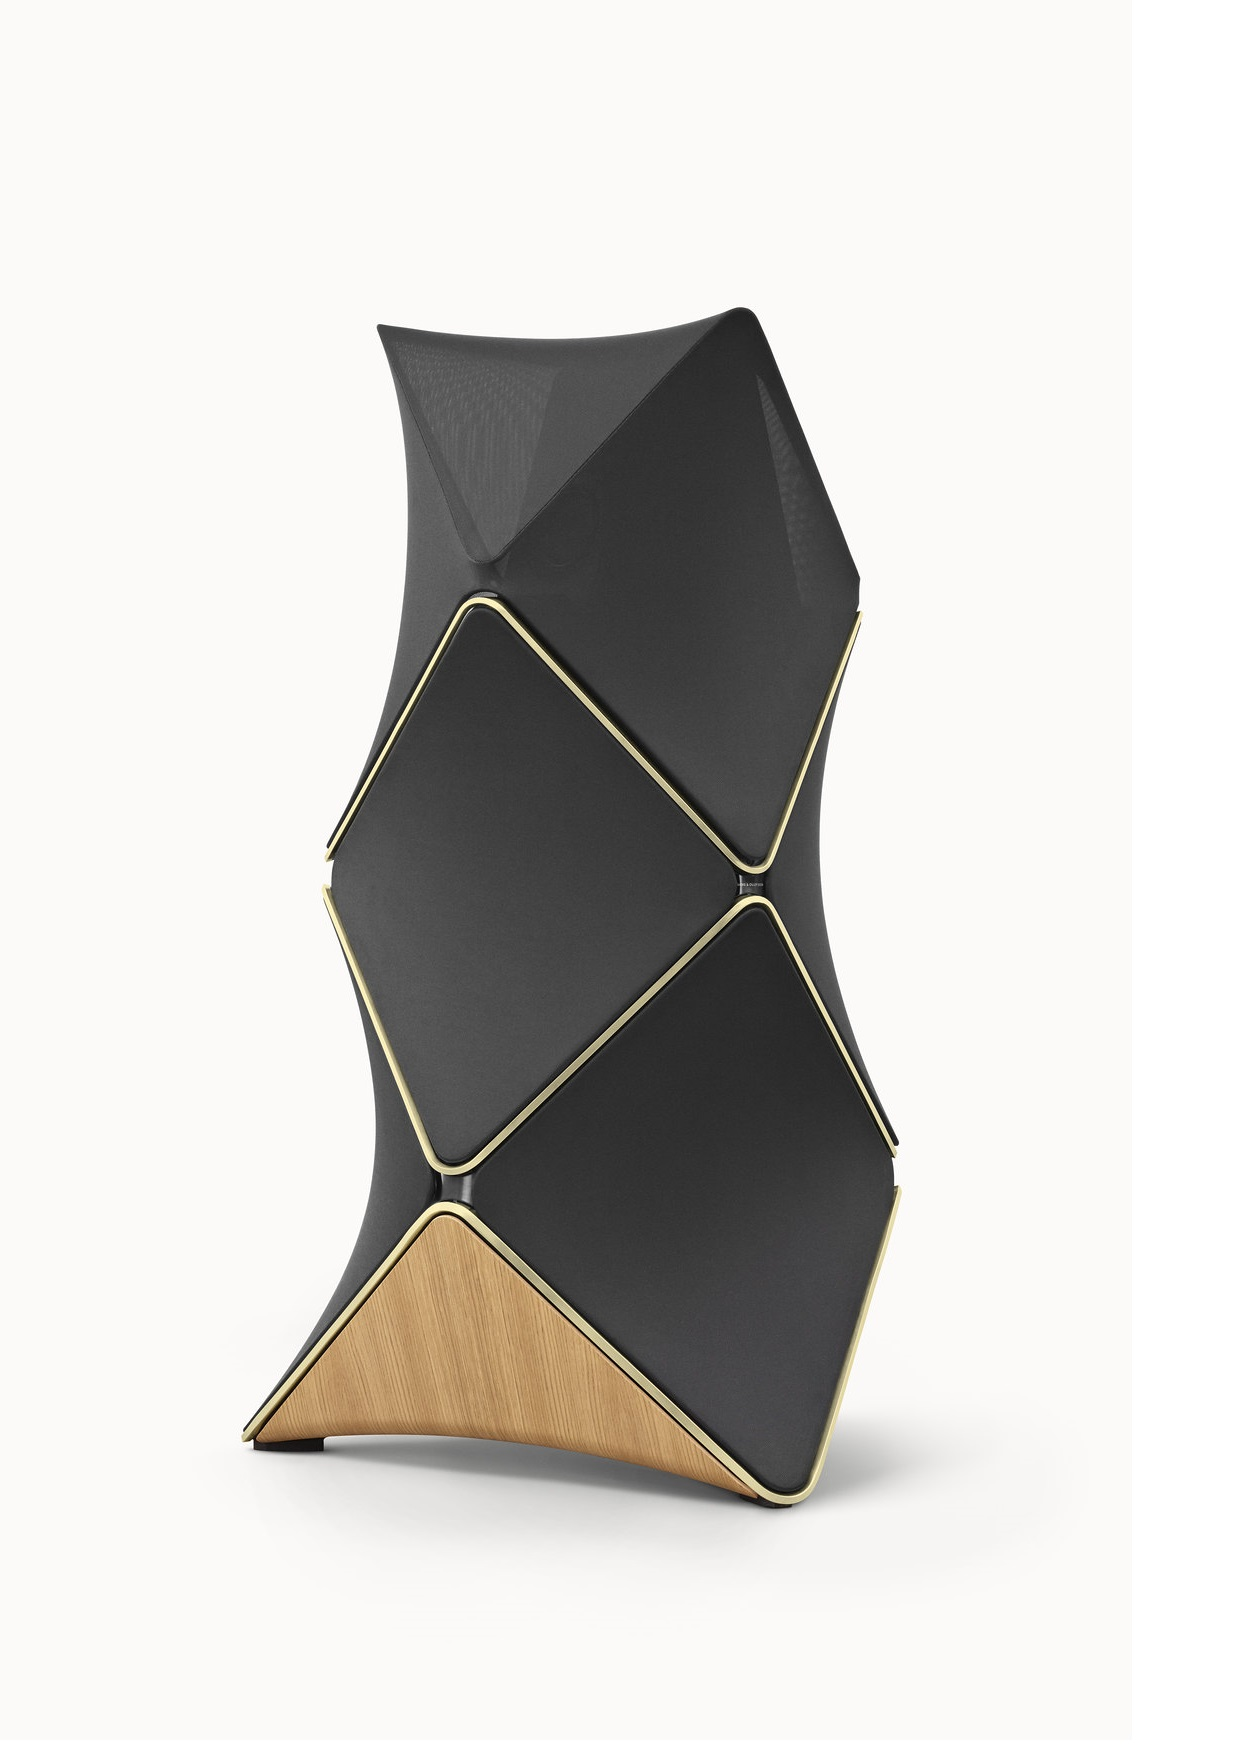 A Bang and Olufsen speaker near Melbourne